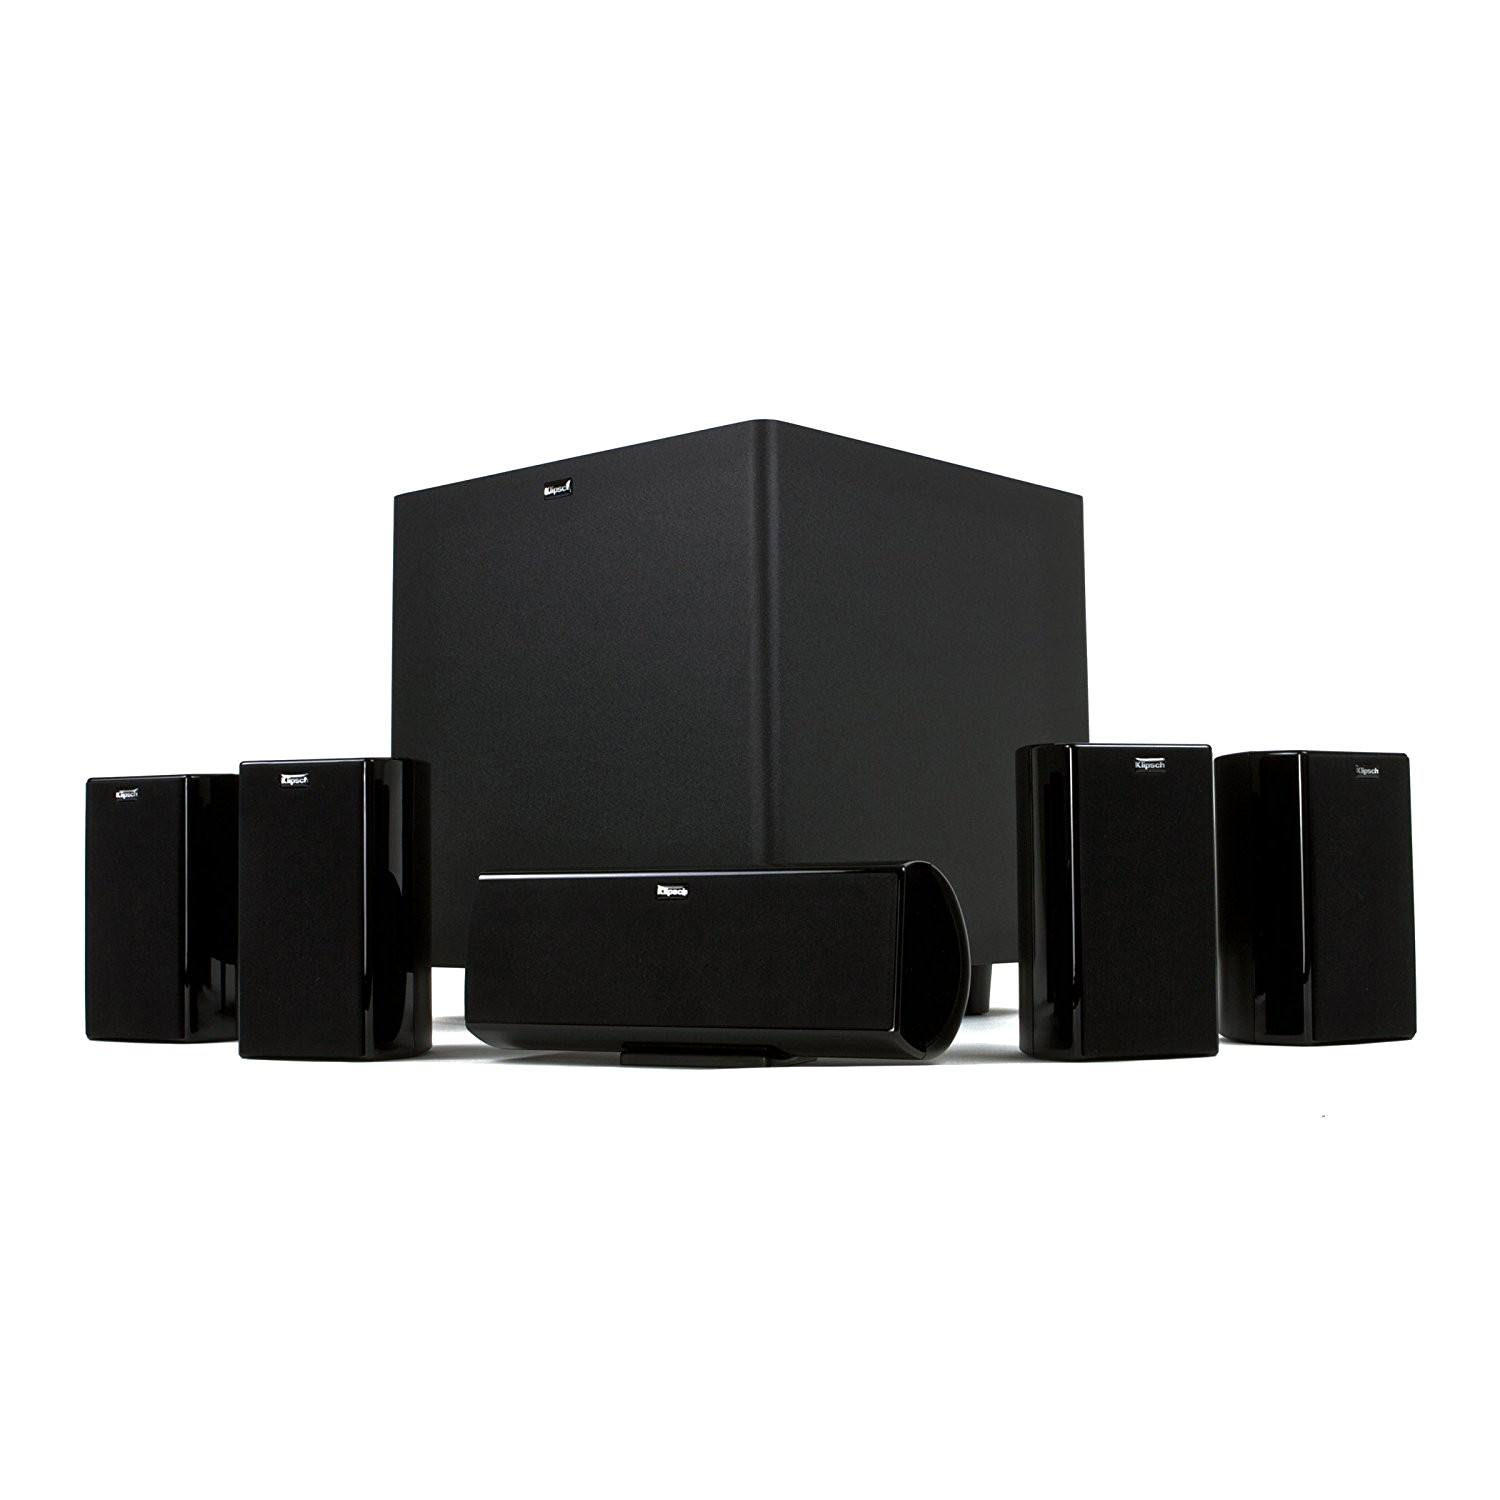 Home Theater System PNG Transparent Image SVG Clip arts